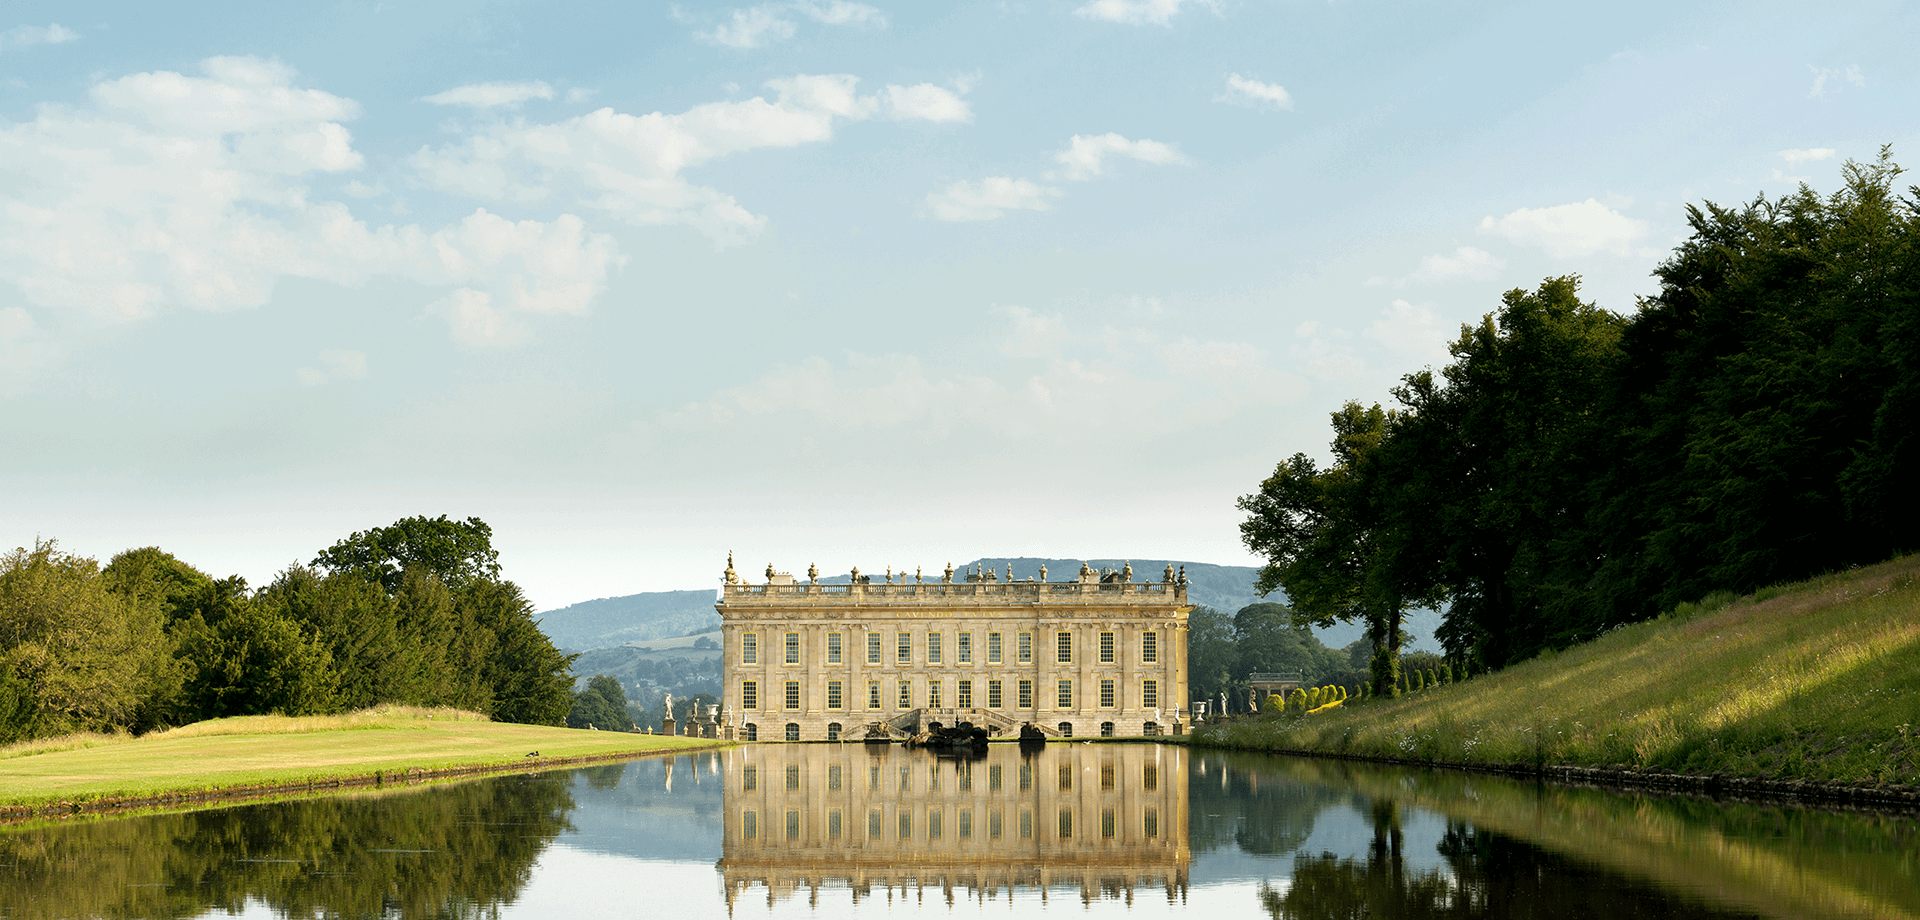 A warm welcome at Chatsworth